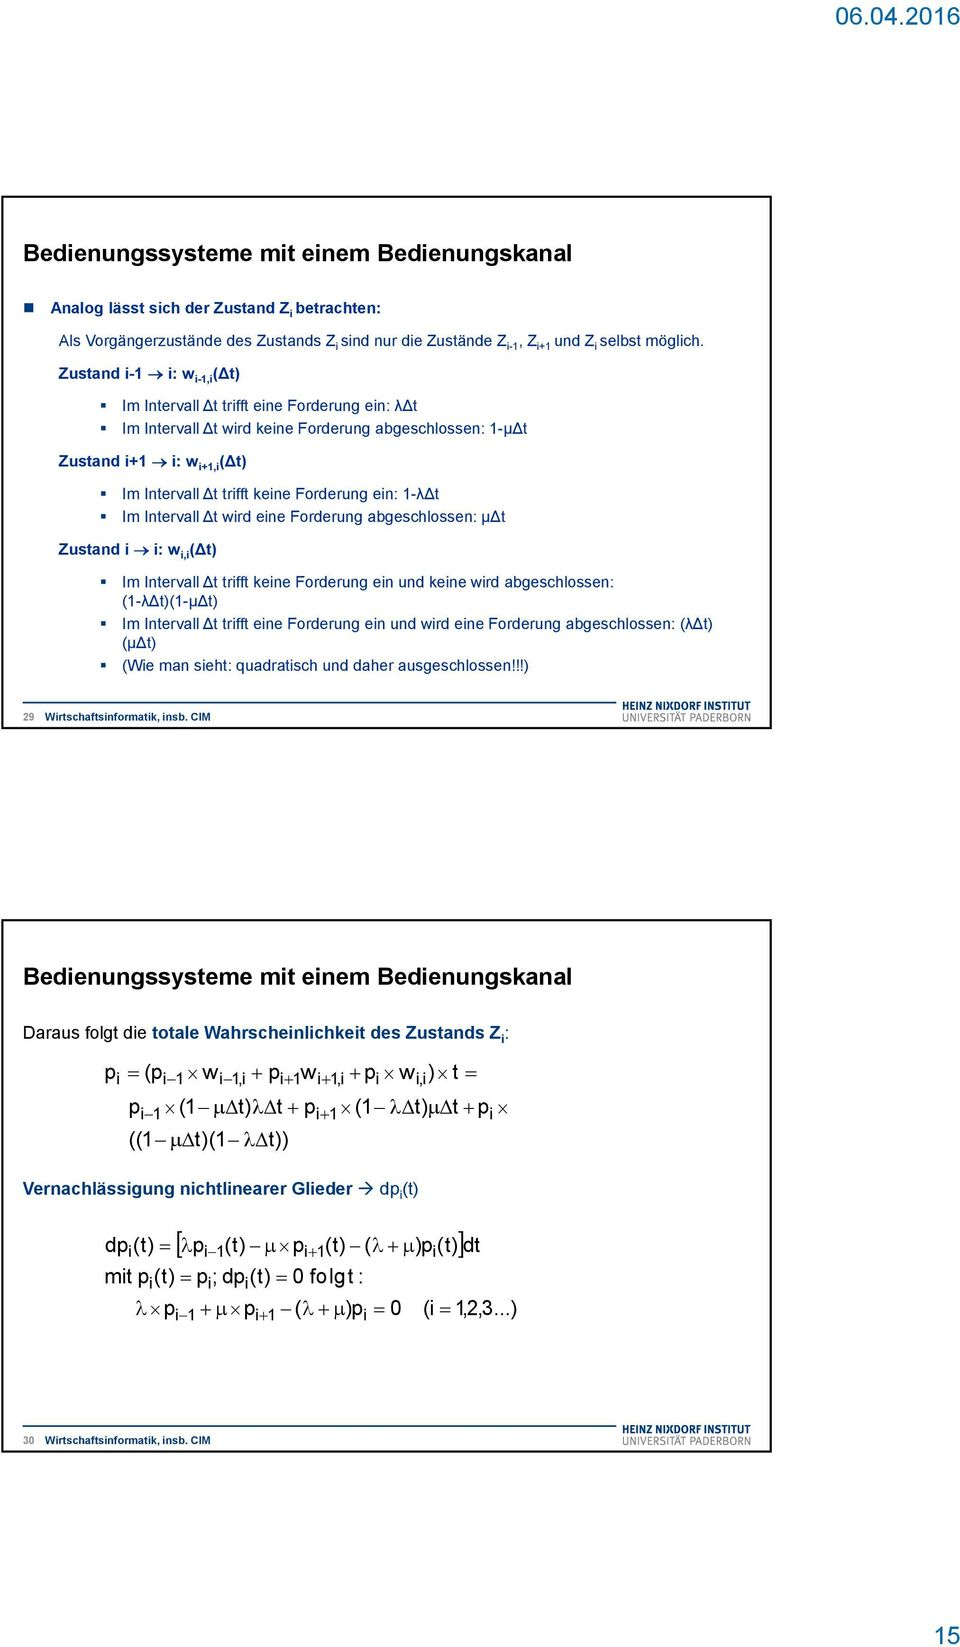 Forderug abgeschlosse: μ t Zustad : w, ( t) Im Itervall t trfft kee Forderug e ud kee wrd abgeschlosse: (-λ t)(-μ t) Im Itervall t trfft ee Forderug e ud wrd ee Forderug abgeschlosse: (λ t) (μ t) (We